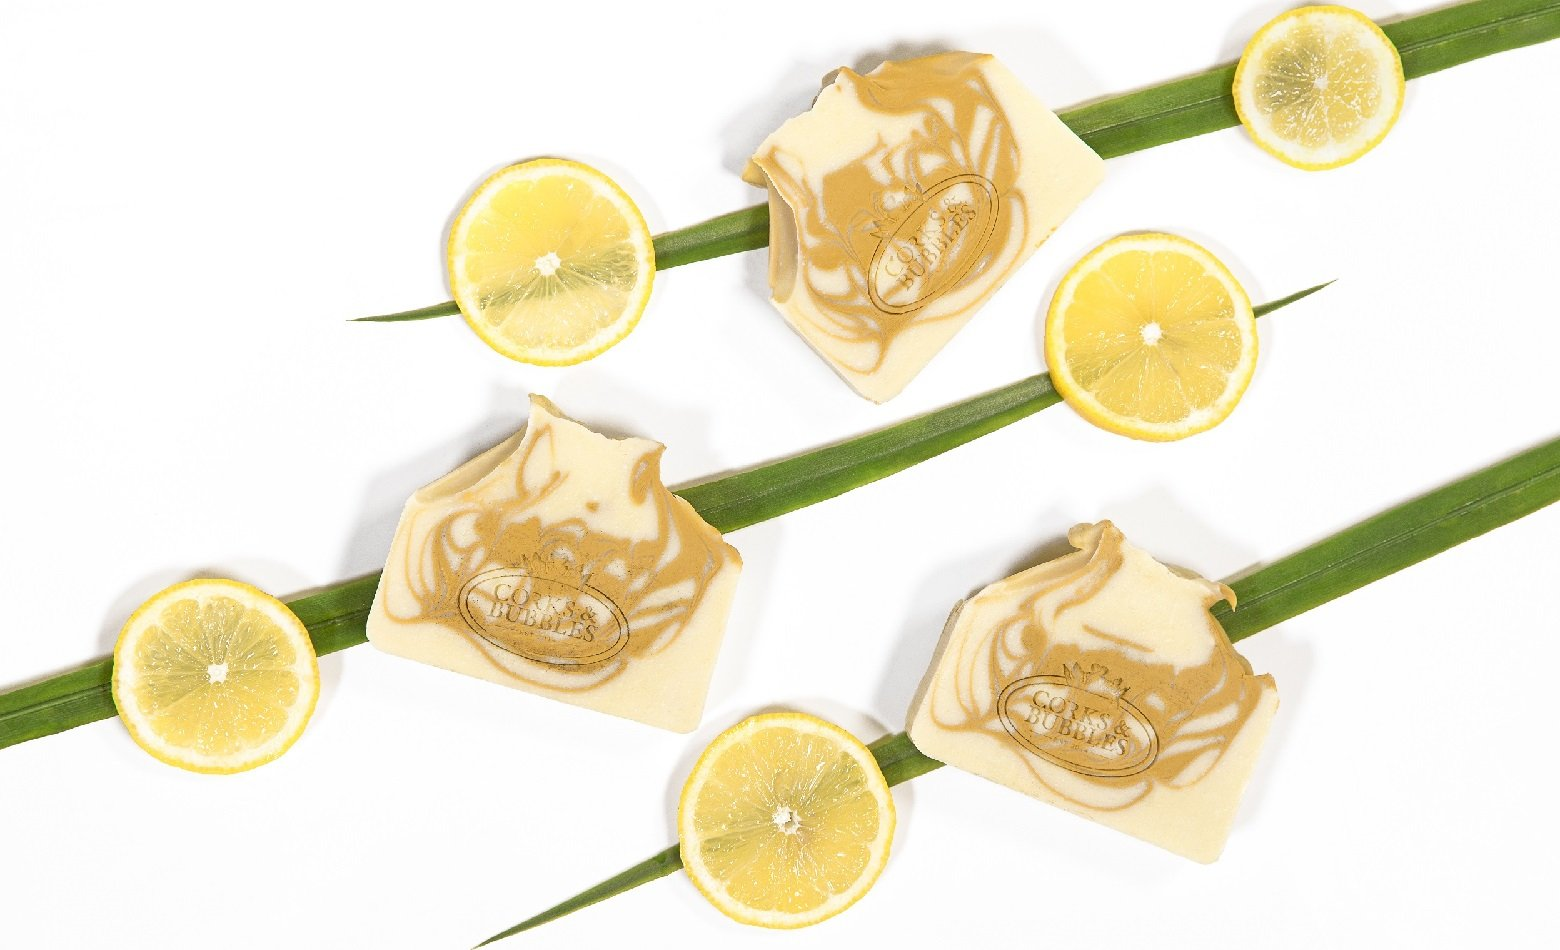 product picture lemongrass soap with slices of lemon and grass blades